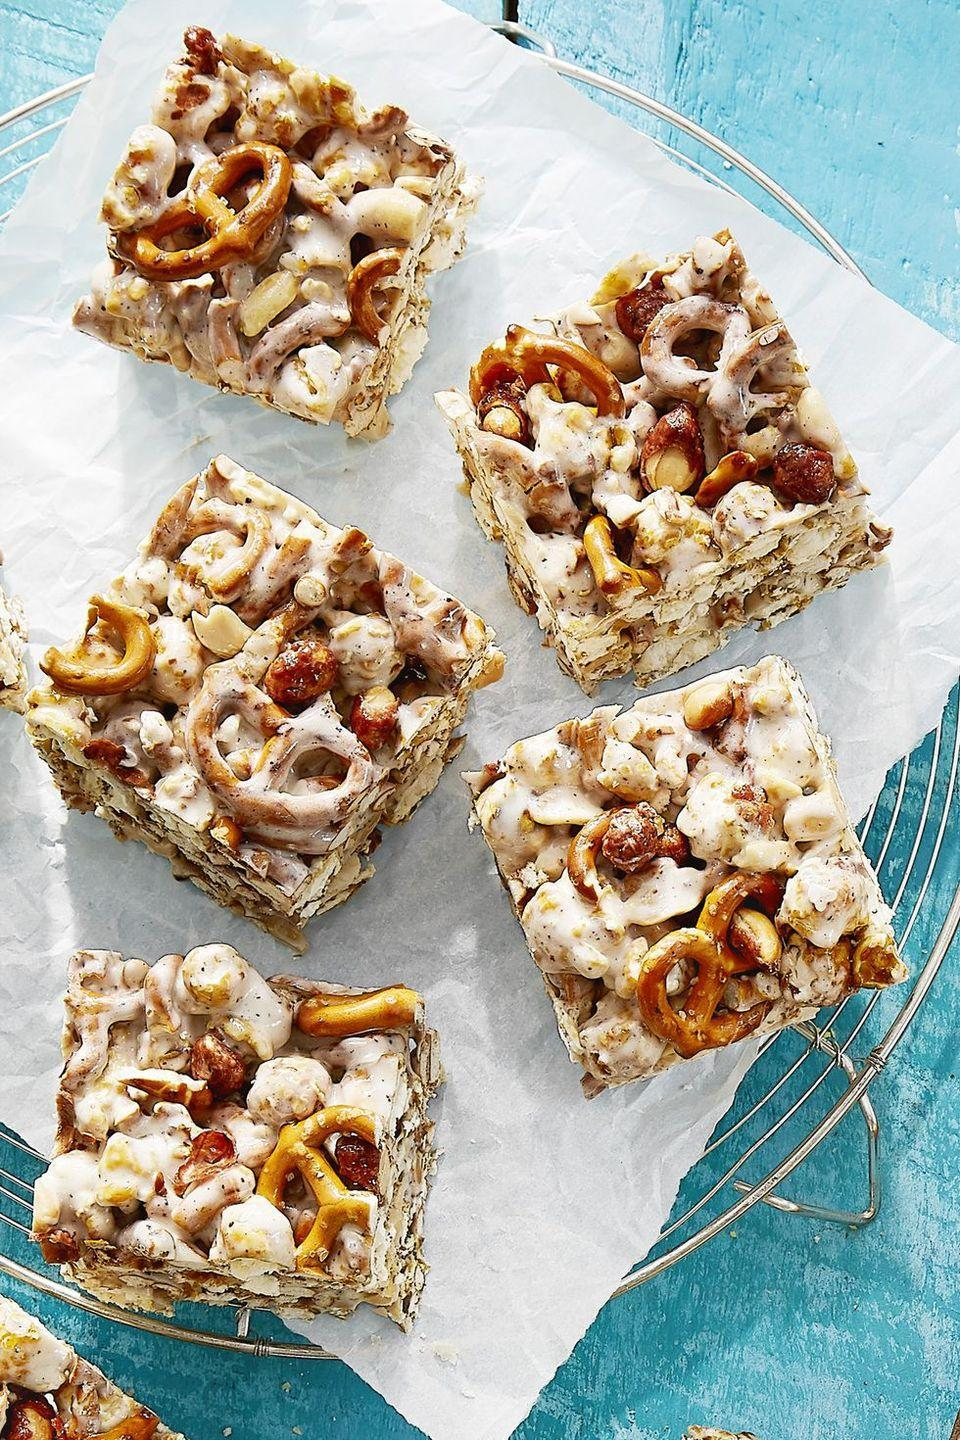 """<p>These ooey-gooey Game Day snacks are sure to please.</p><p><strong><a href=""""https://www.countryliving.com/food-drinks/recipes/a43071/cracker-jack-pretzel-treats-recipe/"""" rel=""""nofollow noopener"""" target=""""_blank"""" data-ylk=""""slk:Get the recipe"""" class=""""link rapid-noclick-resp"""">Get the recipe</a>.</strong></p><p><a class=""""link rapid-noclick-resp"""" href=""""https://www.amazon.com/USA-Pan-Bakeware-Rectangular-Aluminized/dp/B0029JOC6I/?tag=syn-yahoo-20&ascsubtag=%5Bartid%7C10050.g.5080%5Bsrc%7Cyahoo-us"""" rel=""""nofollow noopener"""" target=""""_blank"""" data-ylk=""""slk:SHOP BAKING PANS"""">SHOP BAKING PANS</a><br></p>"""